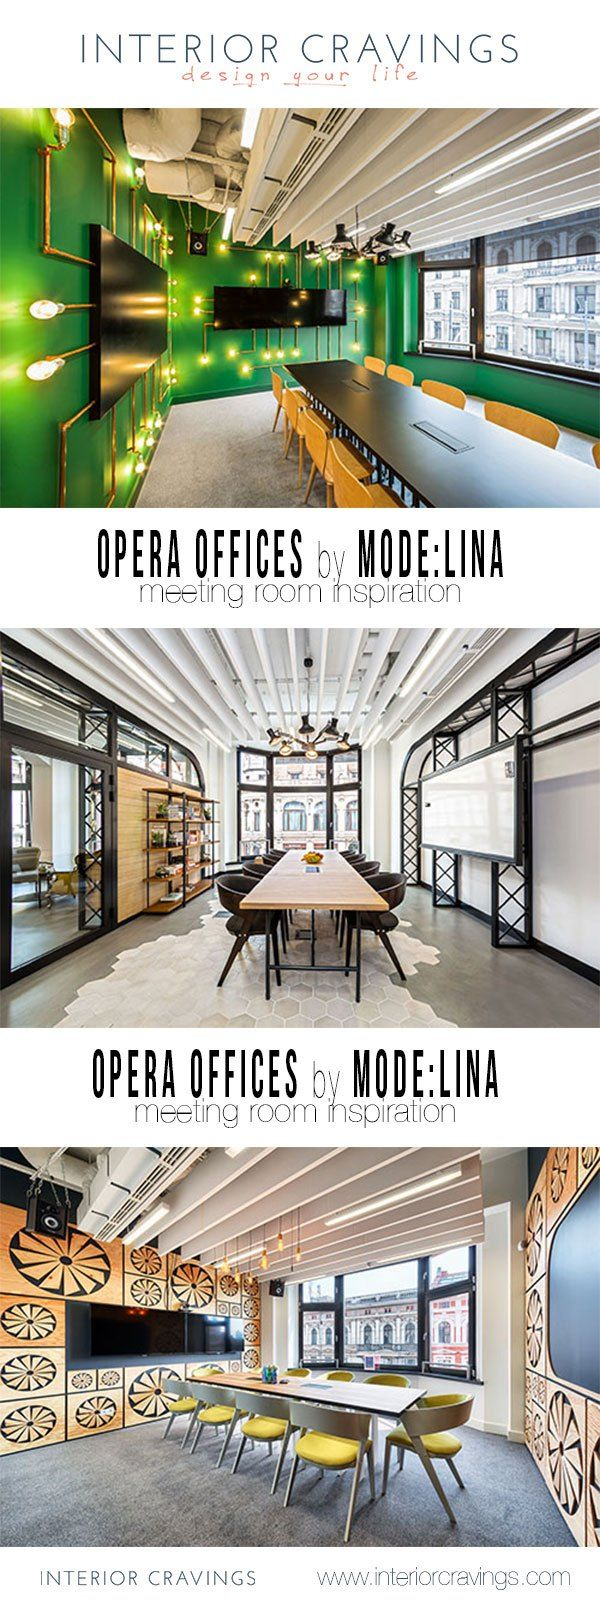 opera software offices by modelina - modern corporate interior design - meeting room interior design inspiration. conference room design details.